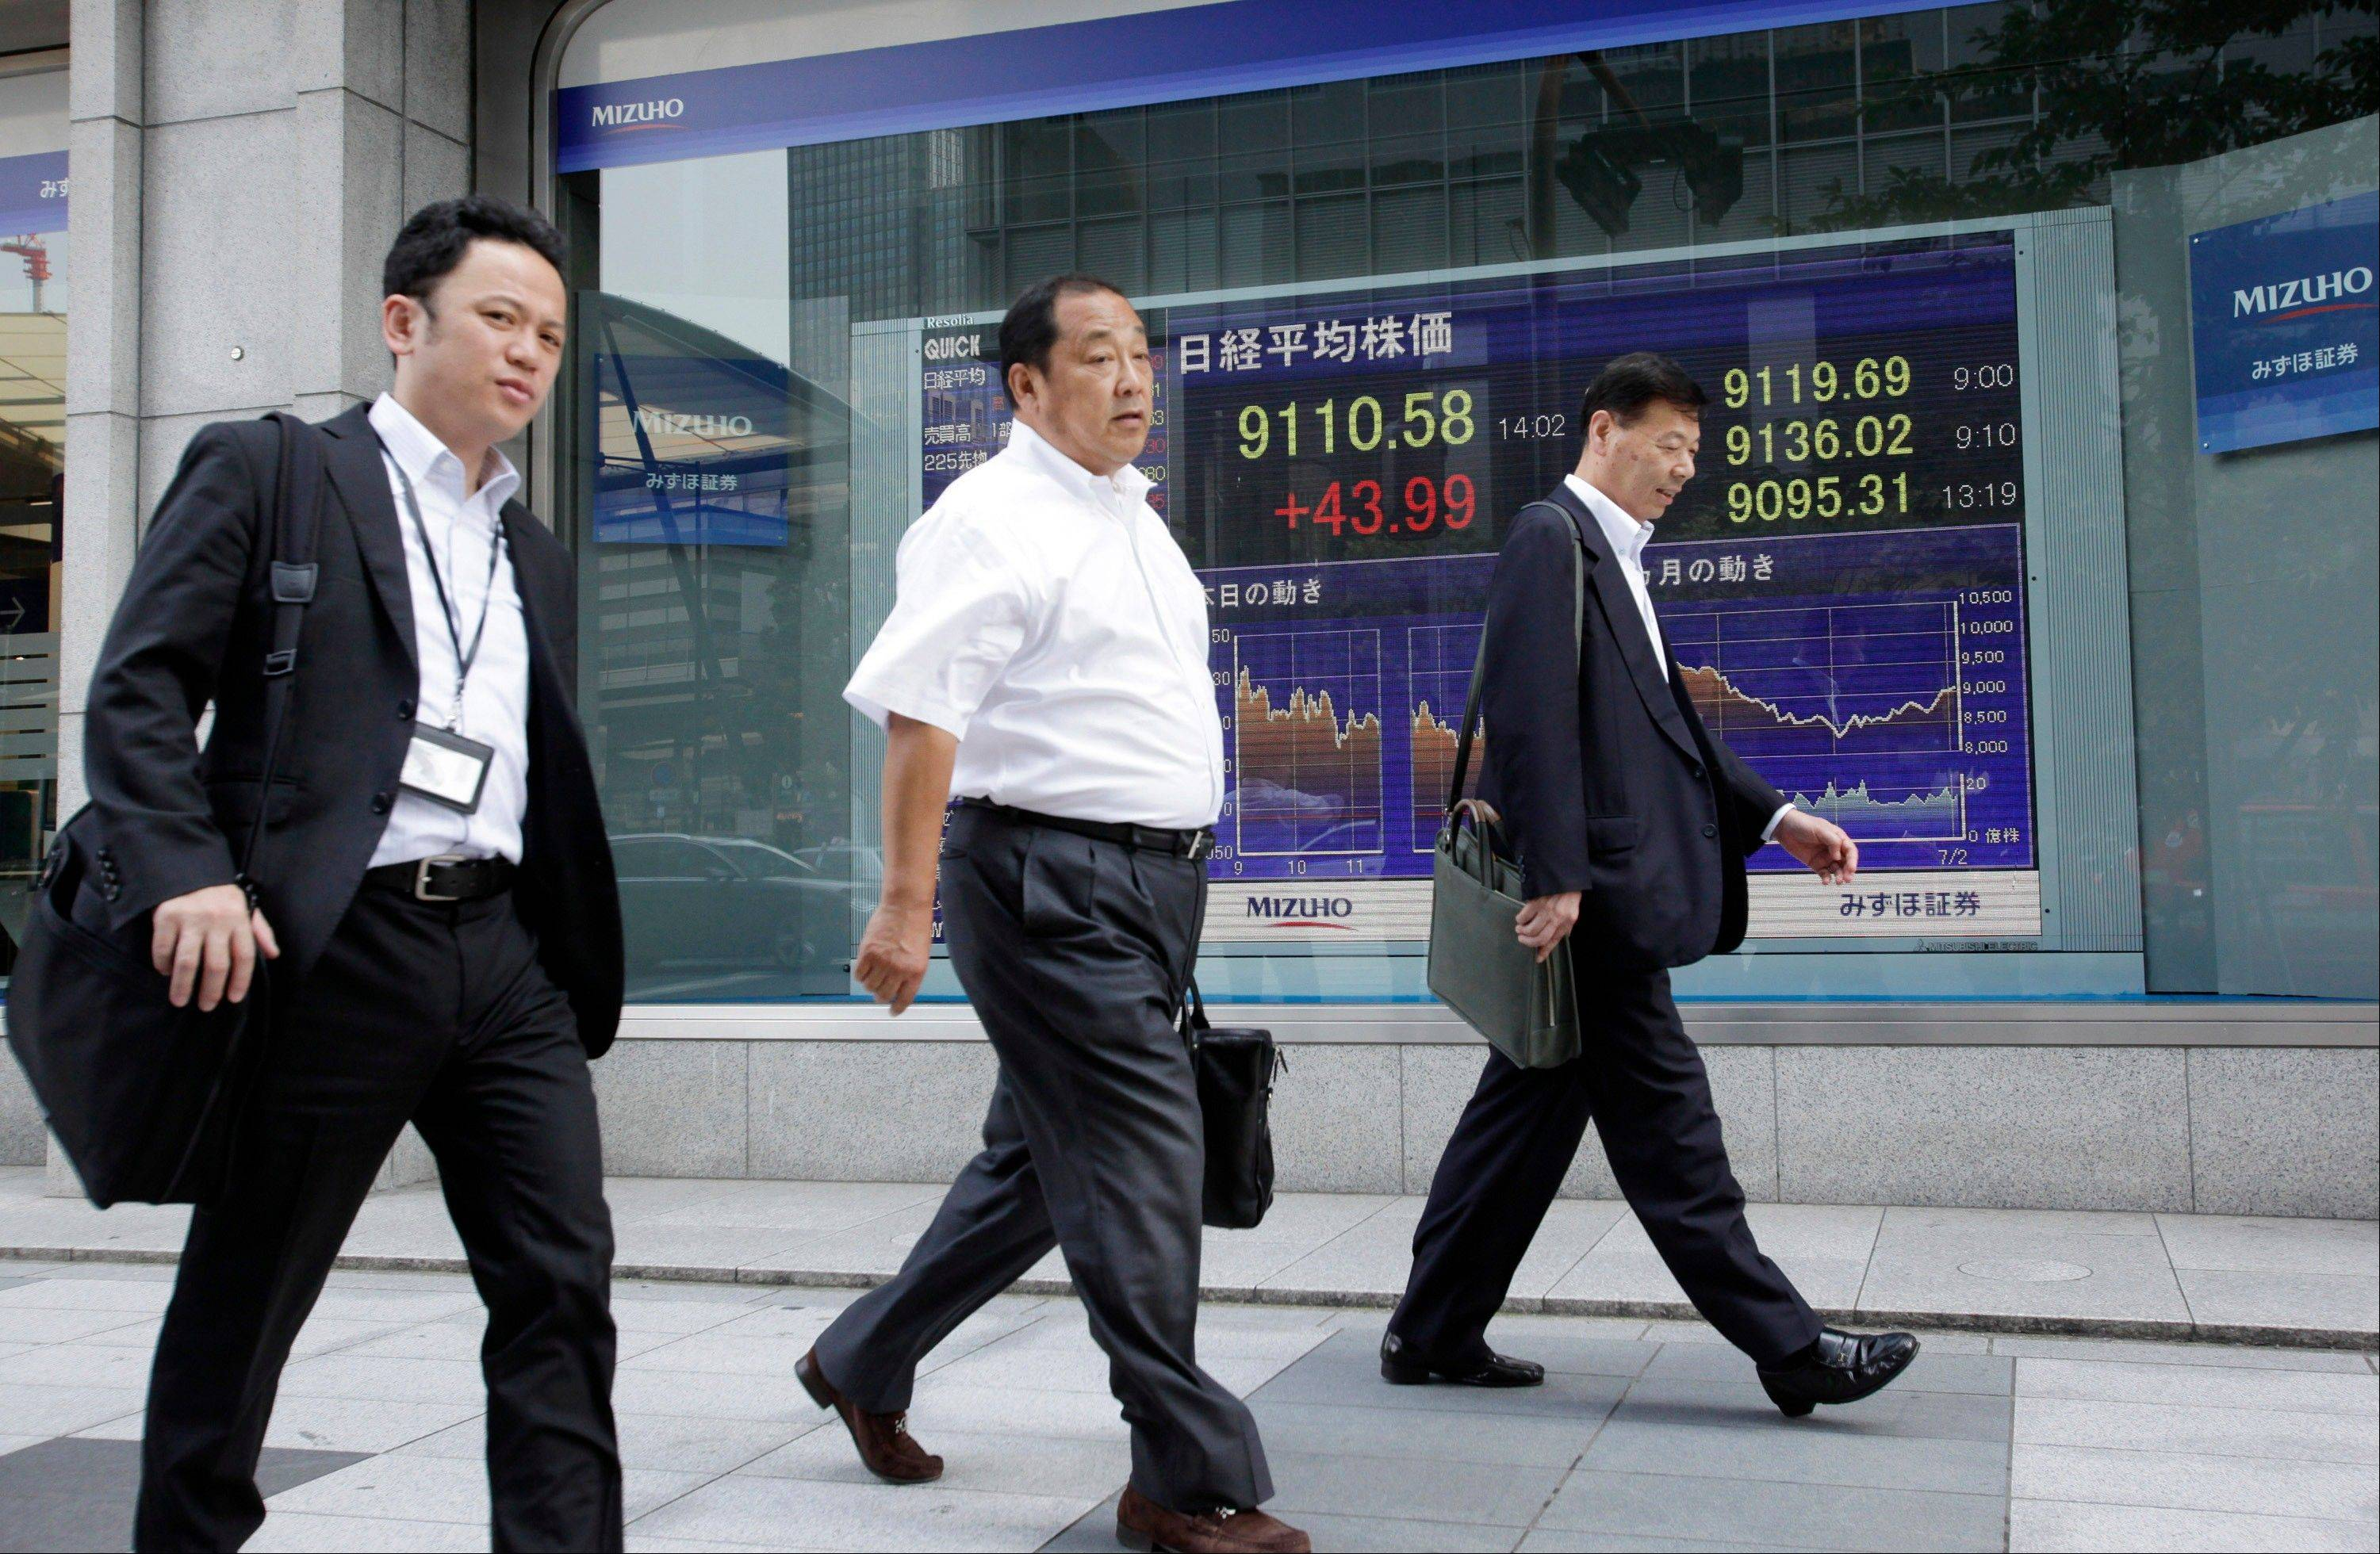 Office workers walk by the electric stock index display of a securities firm in Tokyo.